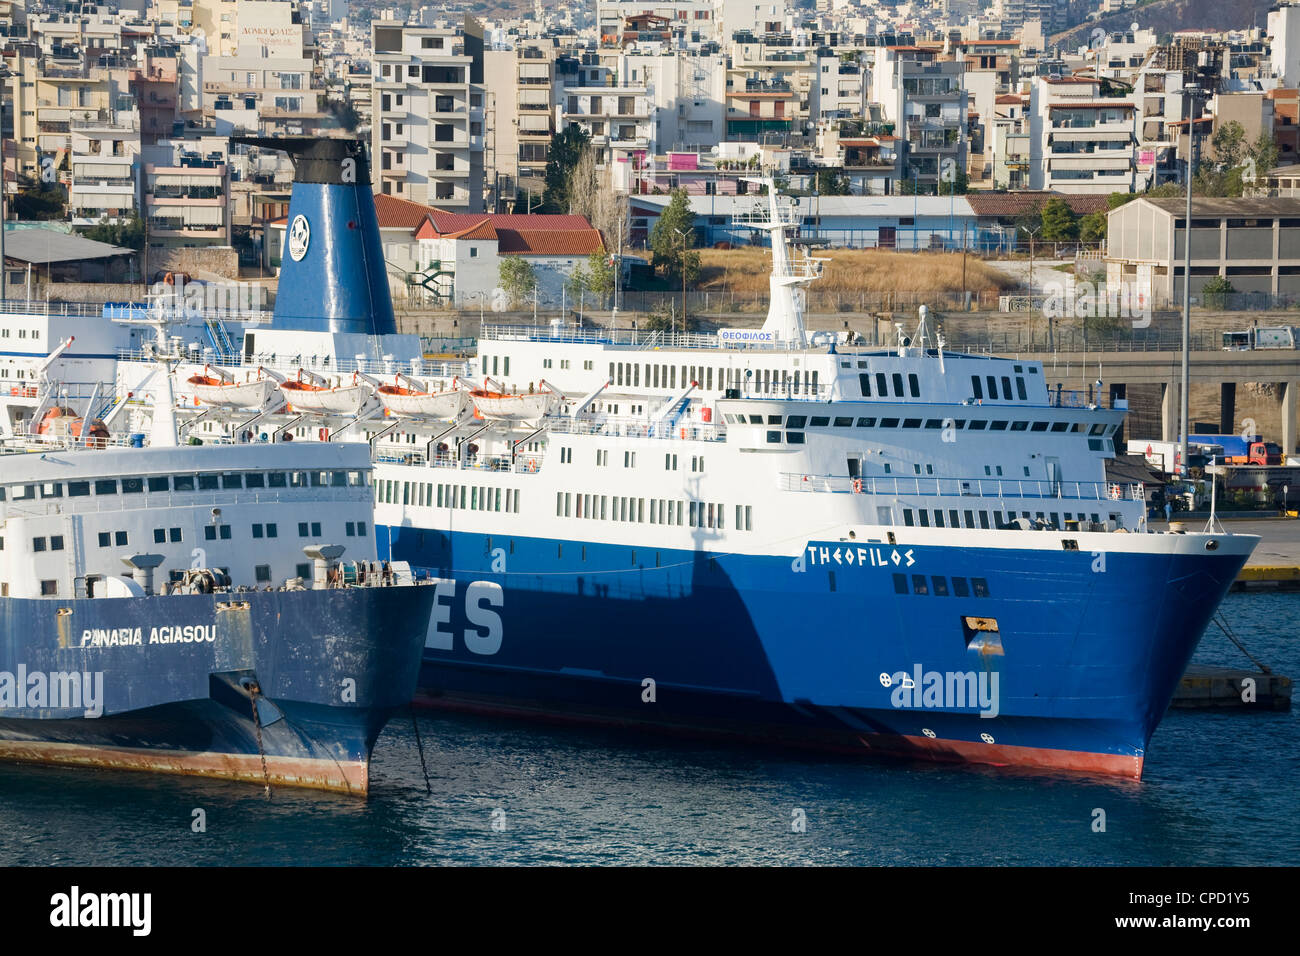 Ferries in the Port of Piraeus, Athens, Greece, Europe - Stock Image